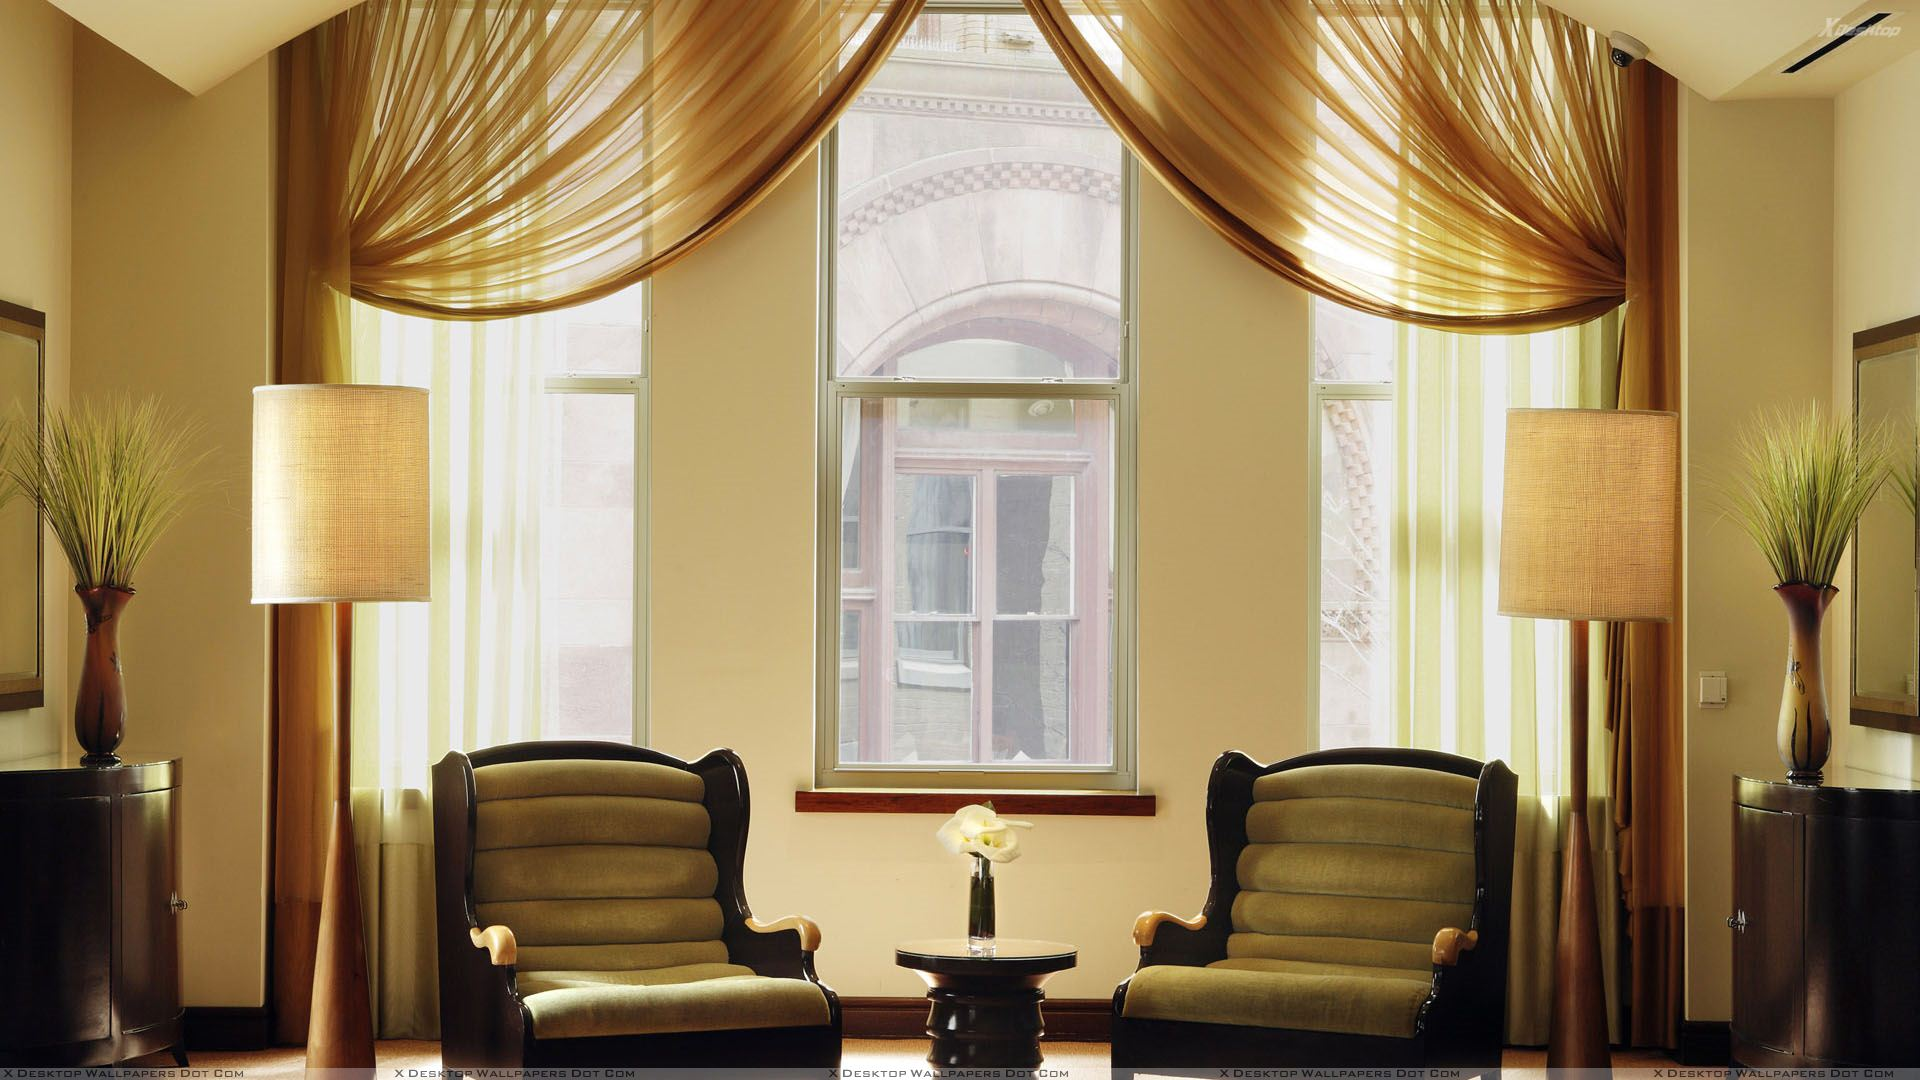 Two Brown Chairs Side Lamps in Room Wallpaper